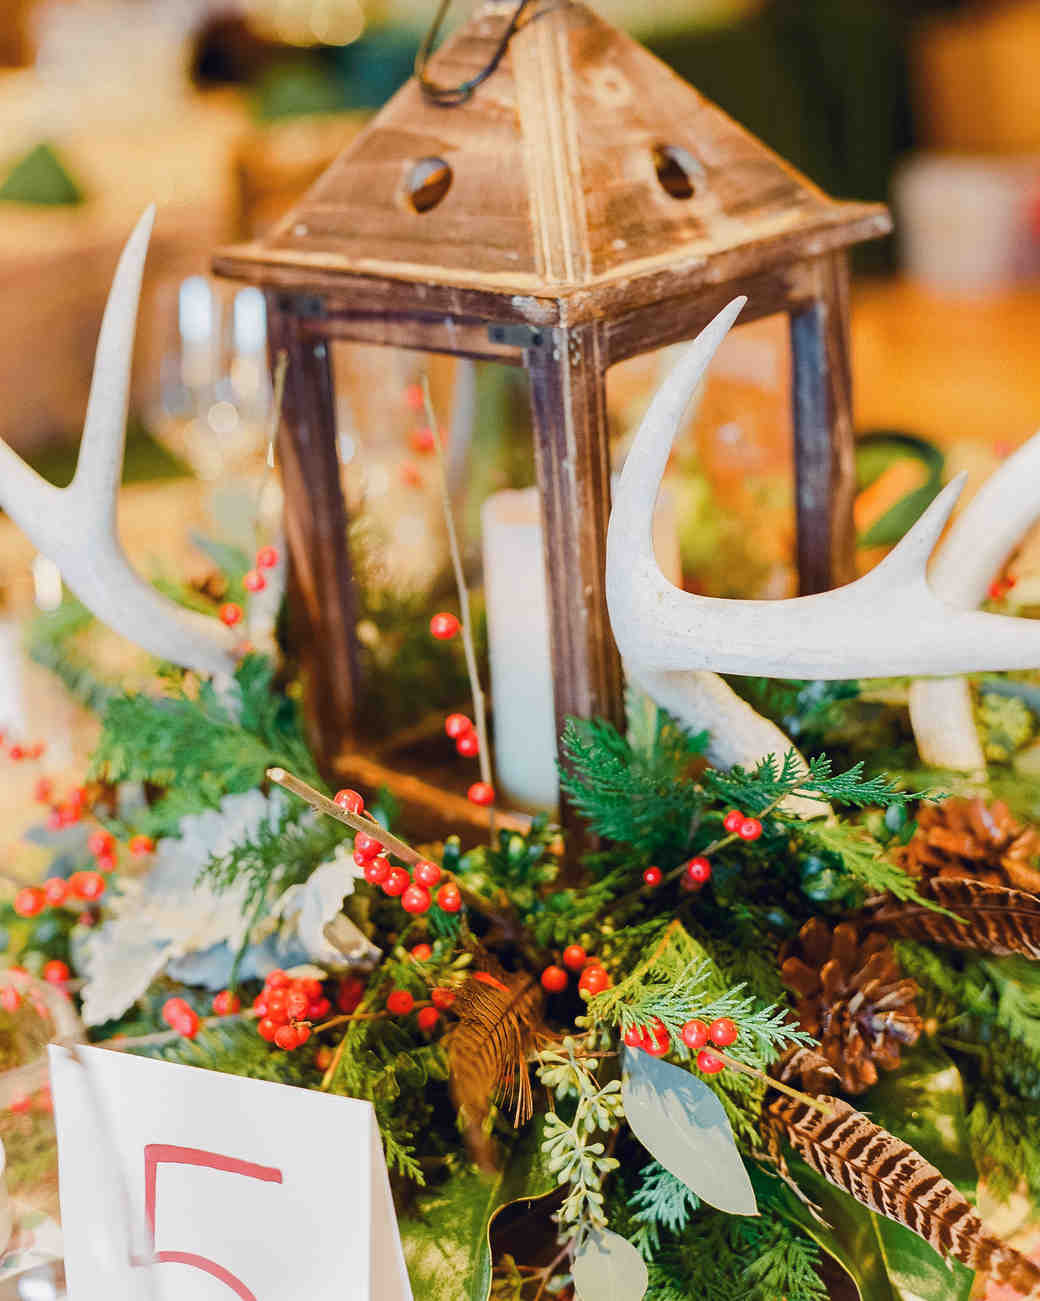 7 Genius Hacks to Make Your Wedding Smell Like the Holidays